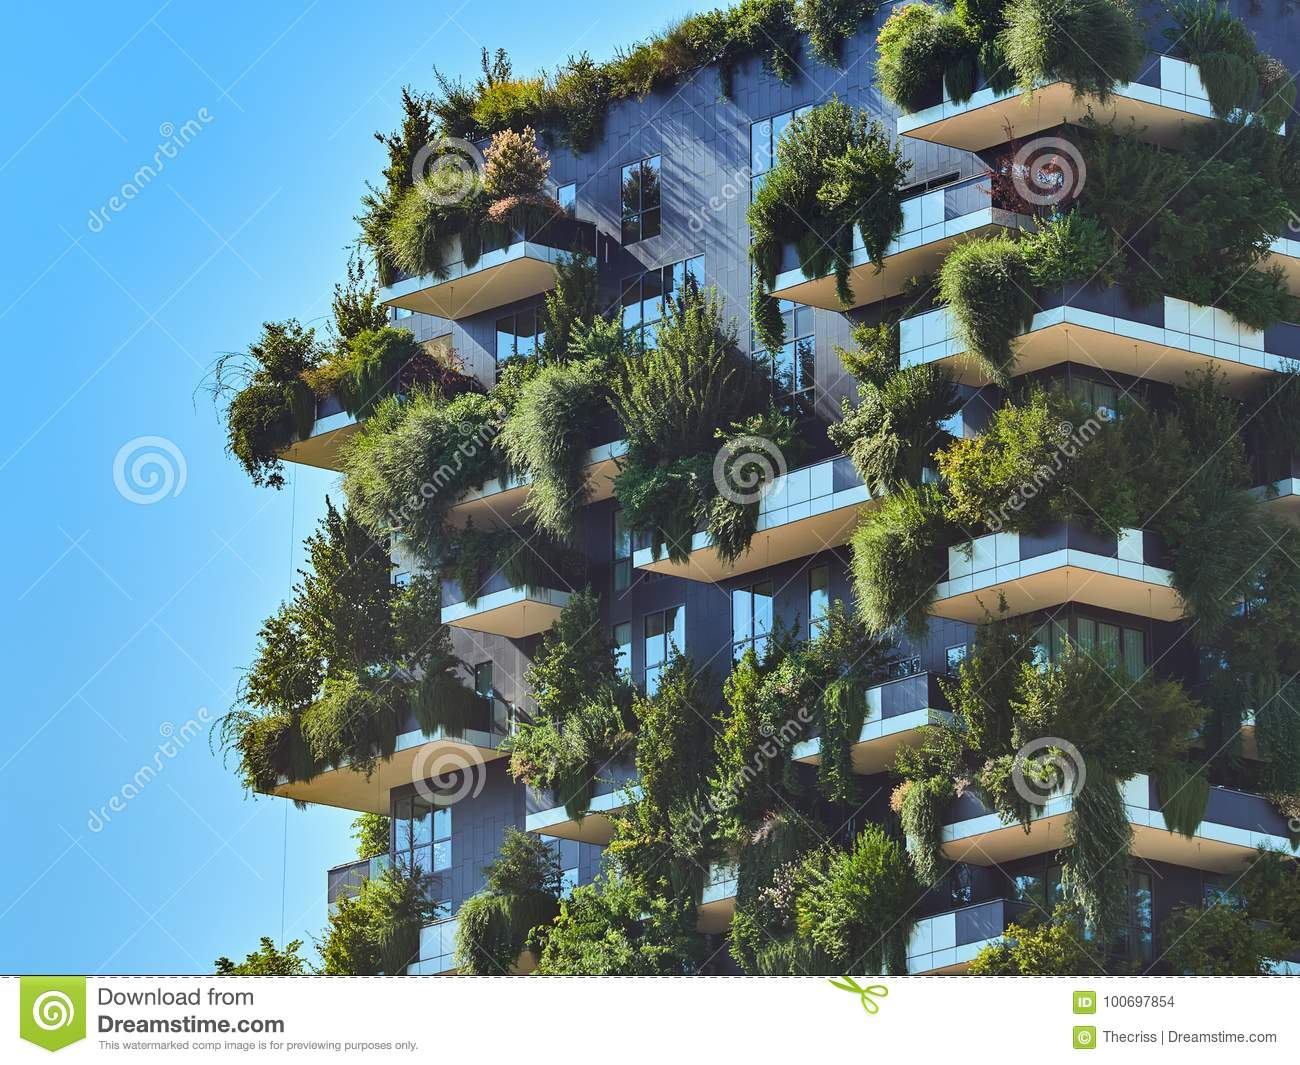 Bosco Verticale Vertical Forest. Designed by Stefano Boeri, sustainable architecture in Porta Nuova district, in Milan